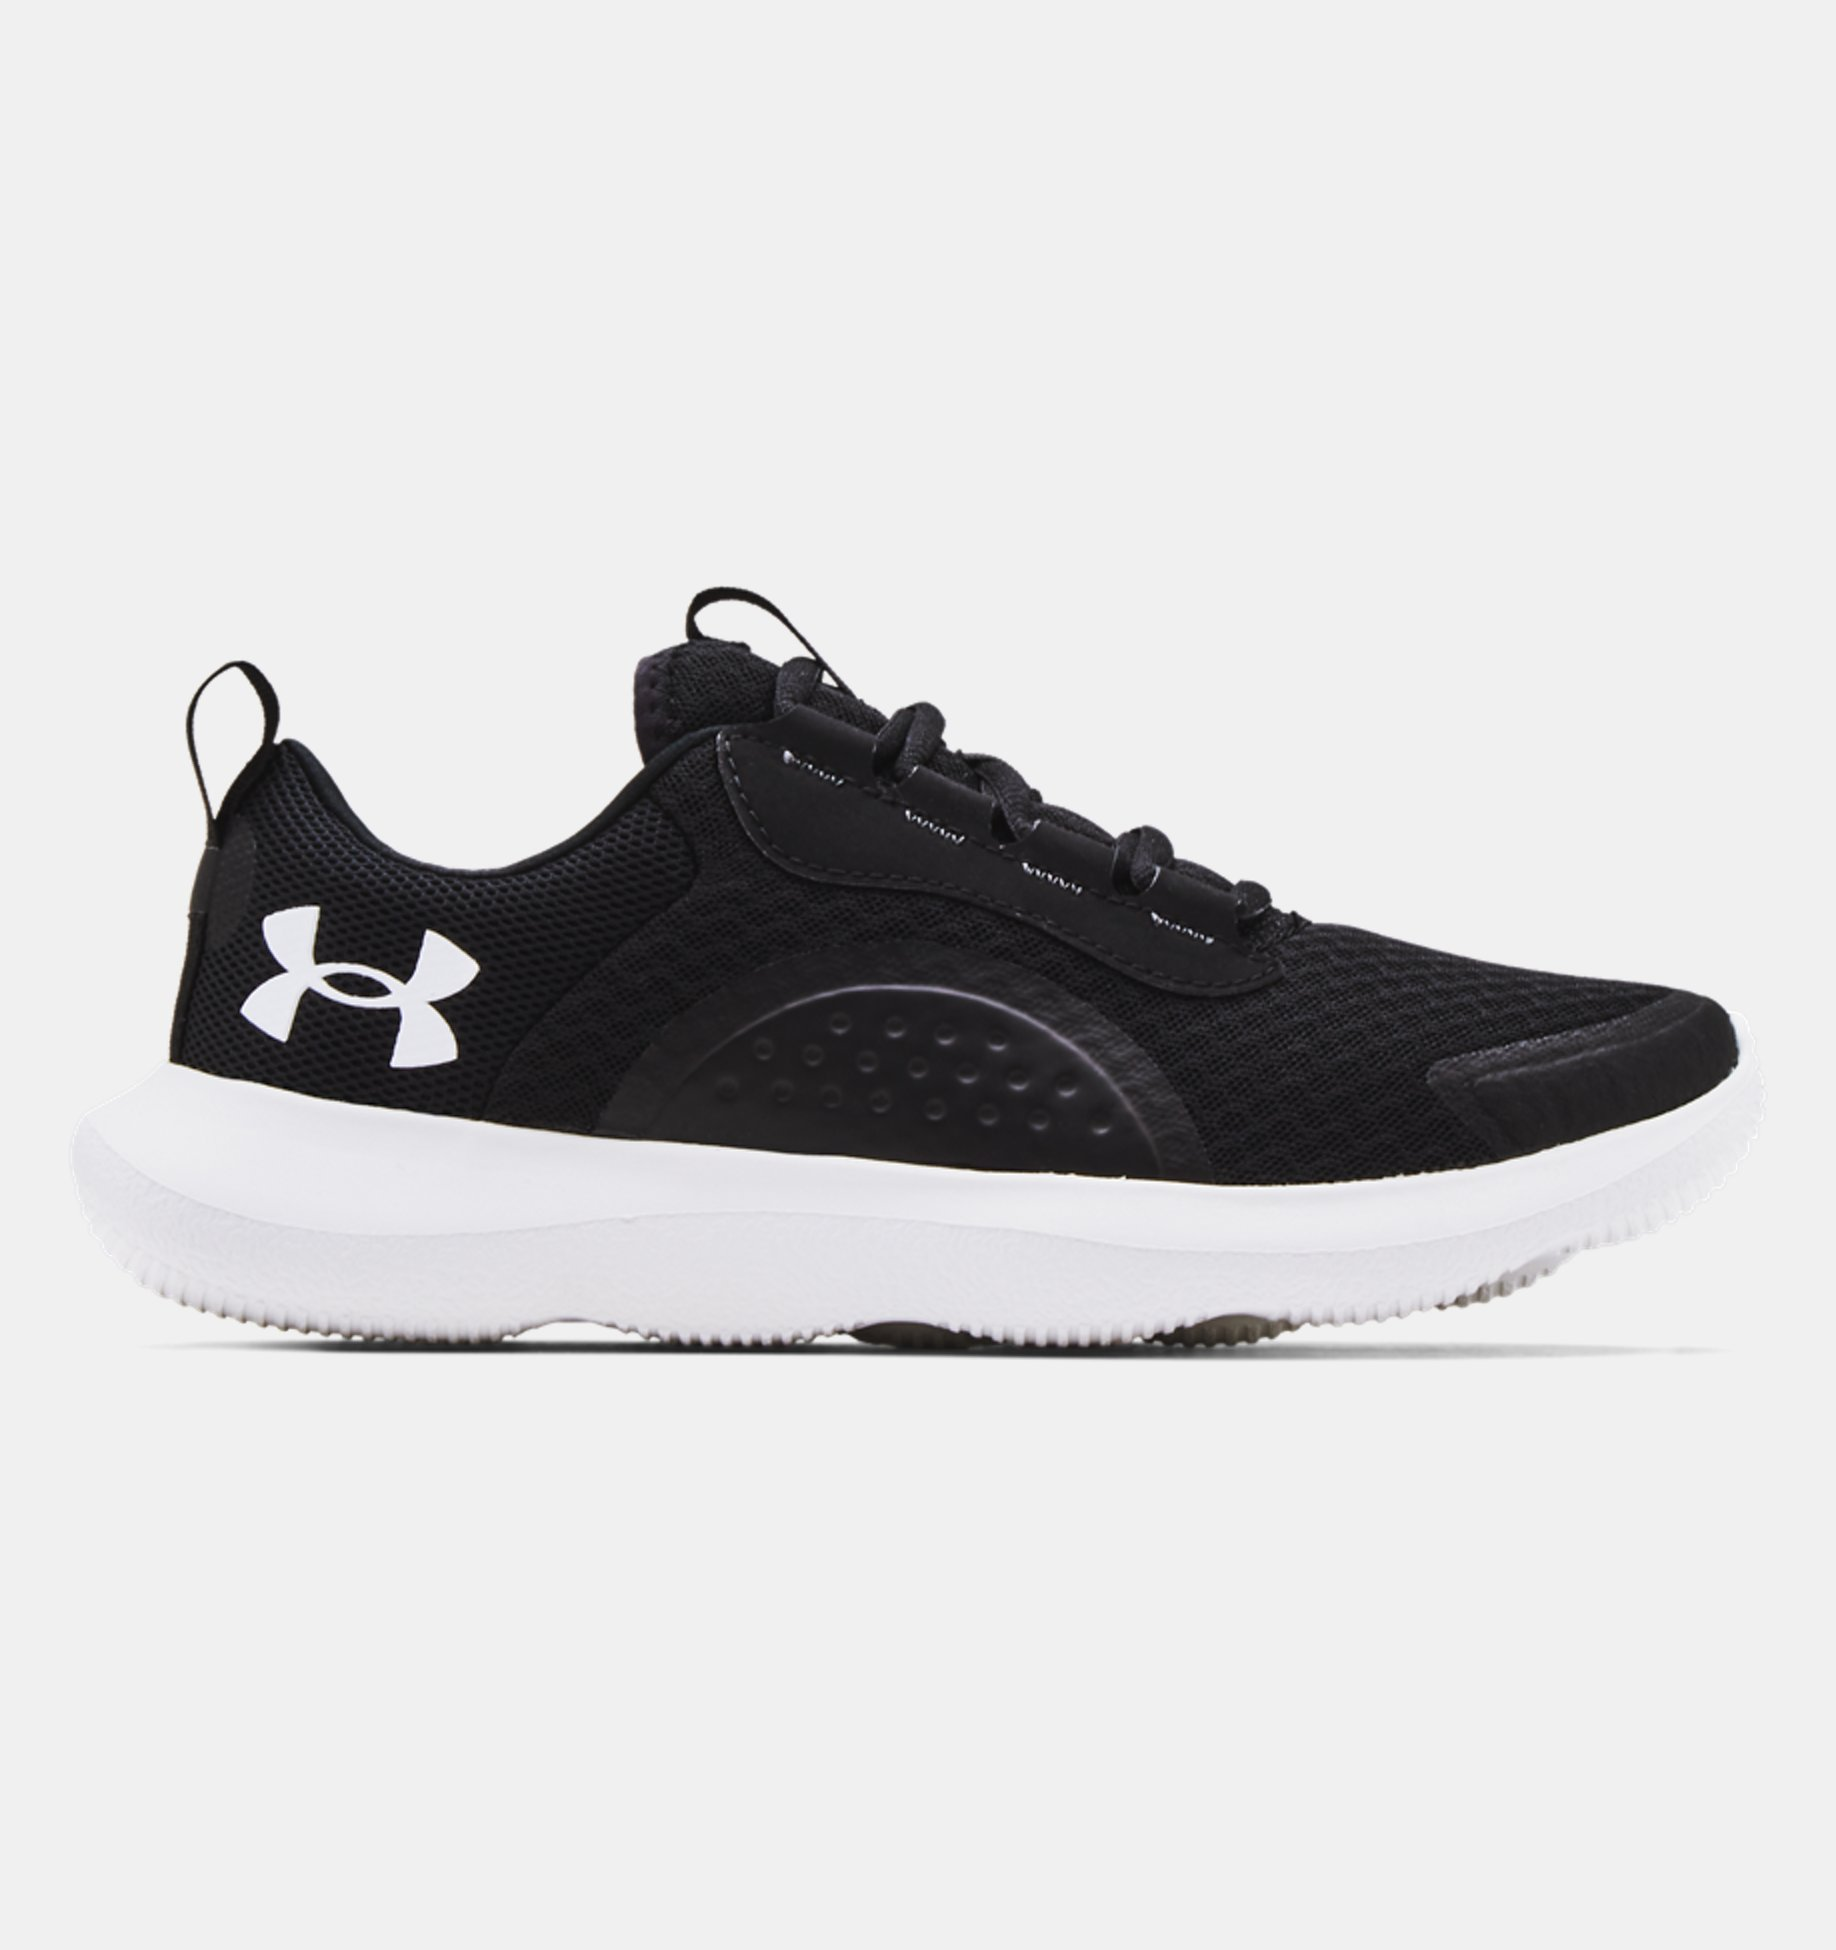 Underarmour Womens UA Victory Sportstyle Shoes